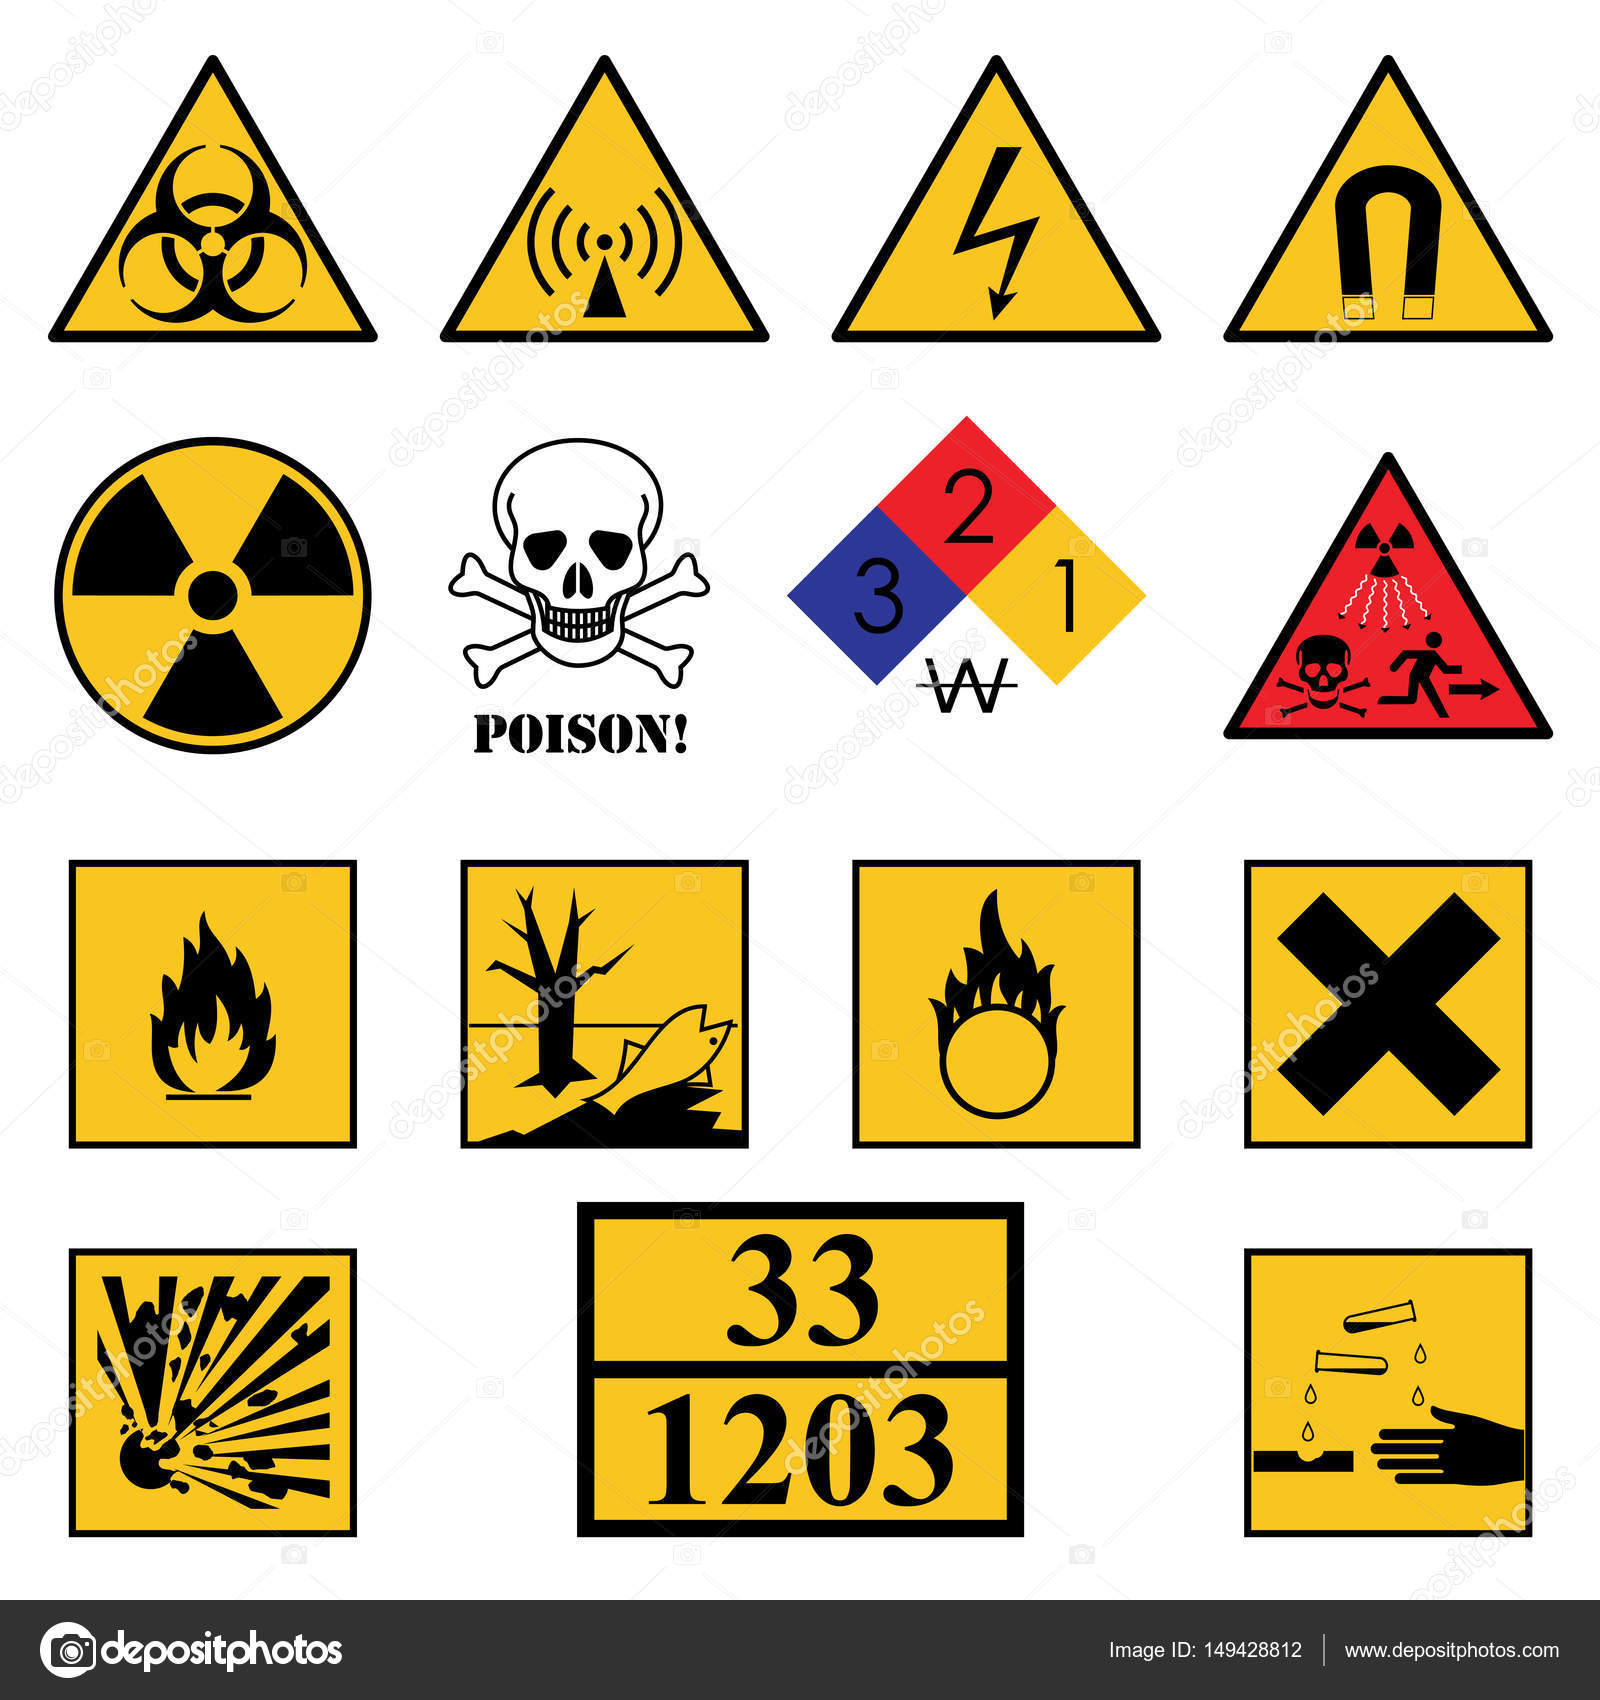 Laser warning signs stock vectors royalty free laser warning warning hazard signs vector graphics biocorpaavc Image collections